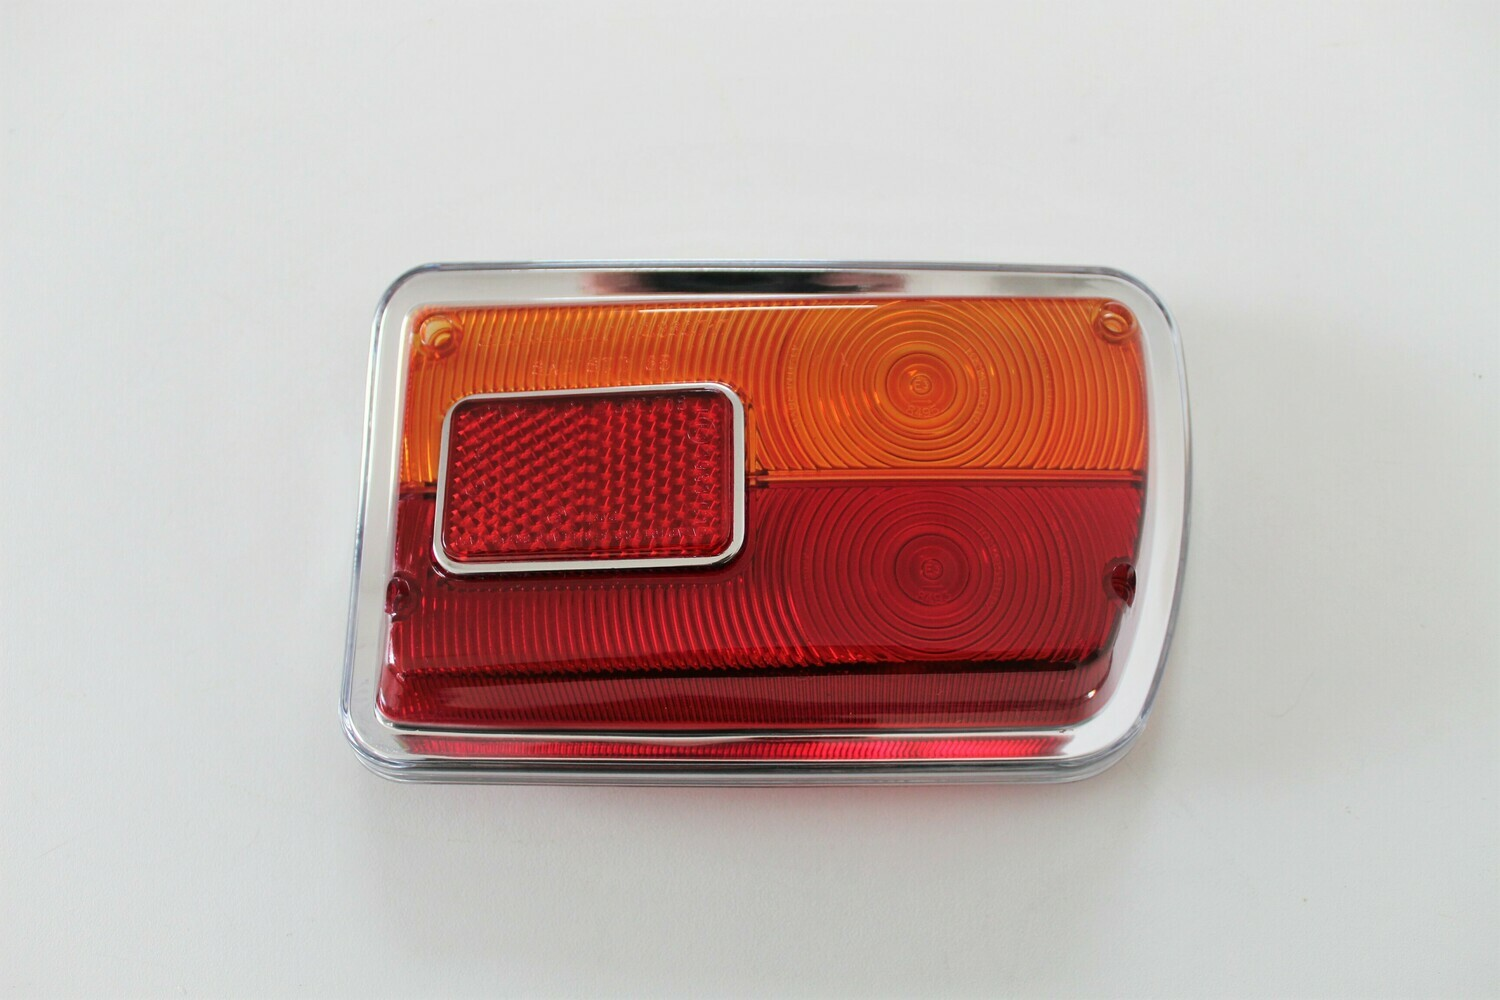 Carello 1750 GTV MK2/GT Juniors/Sprint GTV Rear Light Lens, Right Side